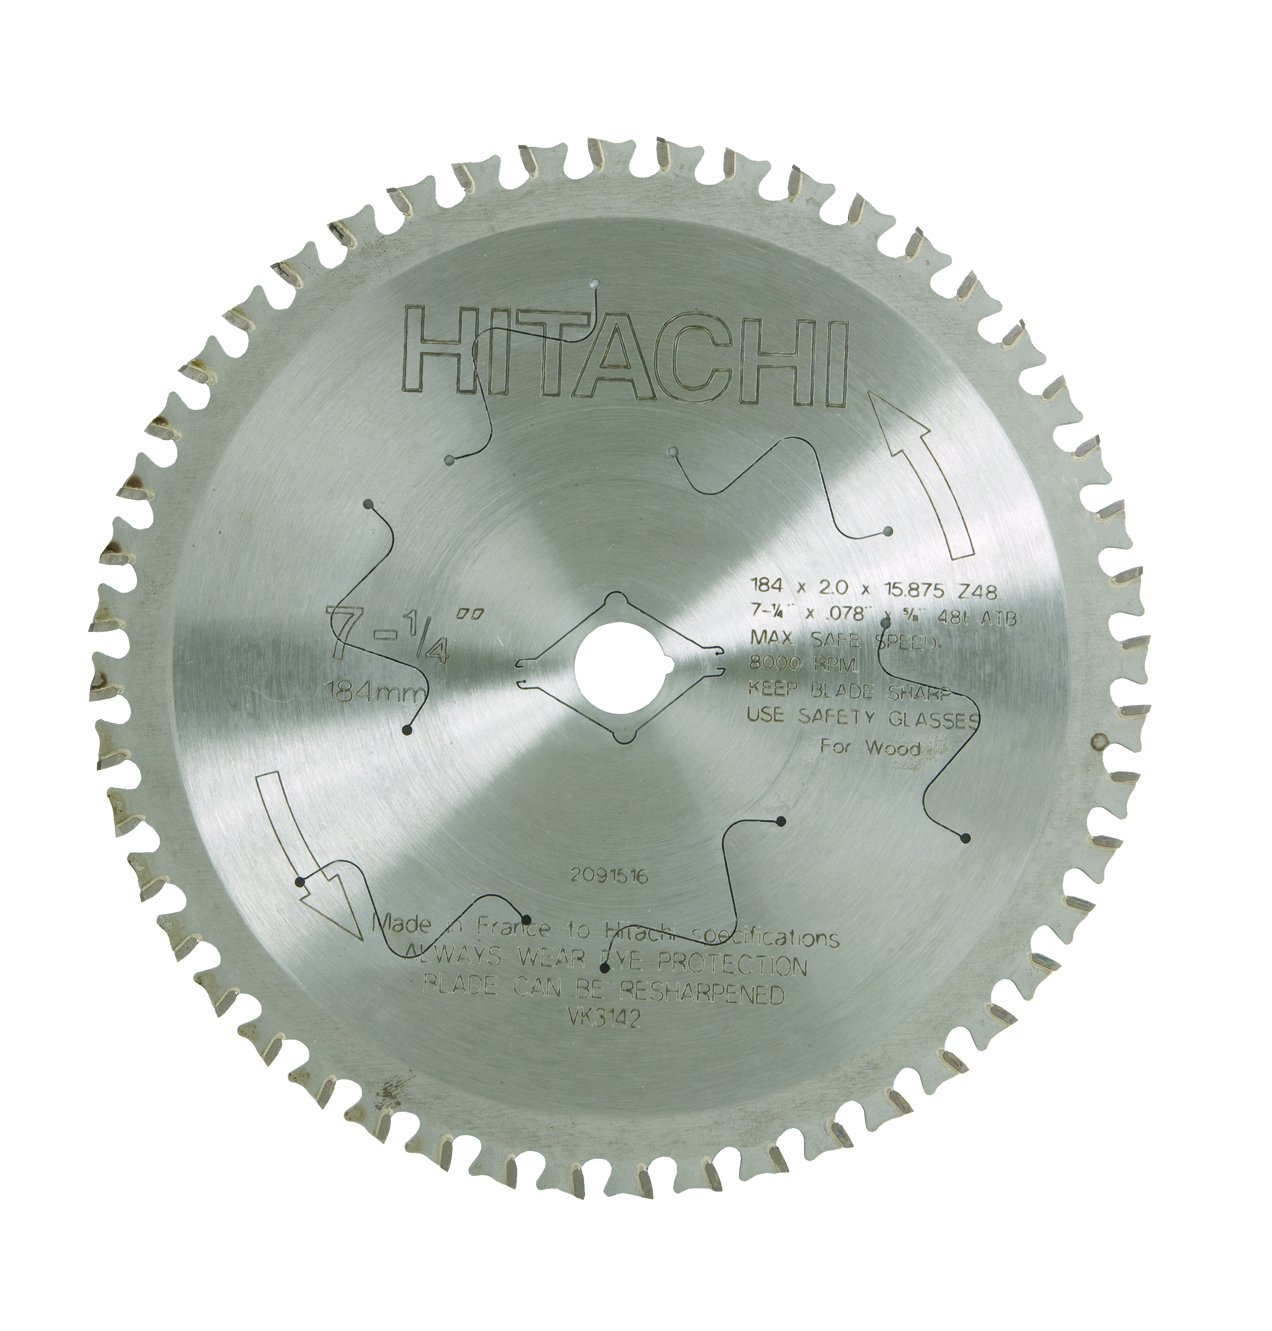 Hitachi 726111 48-Teeth Tungsten Carbide Tipped 7-1/4-Inch TCG 5/8-Inch Dry Cutting Saw Blade by Hitachi